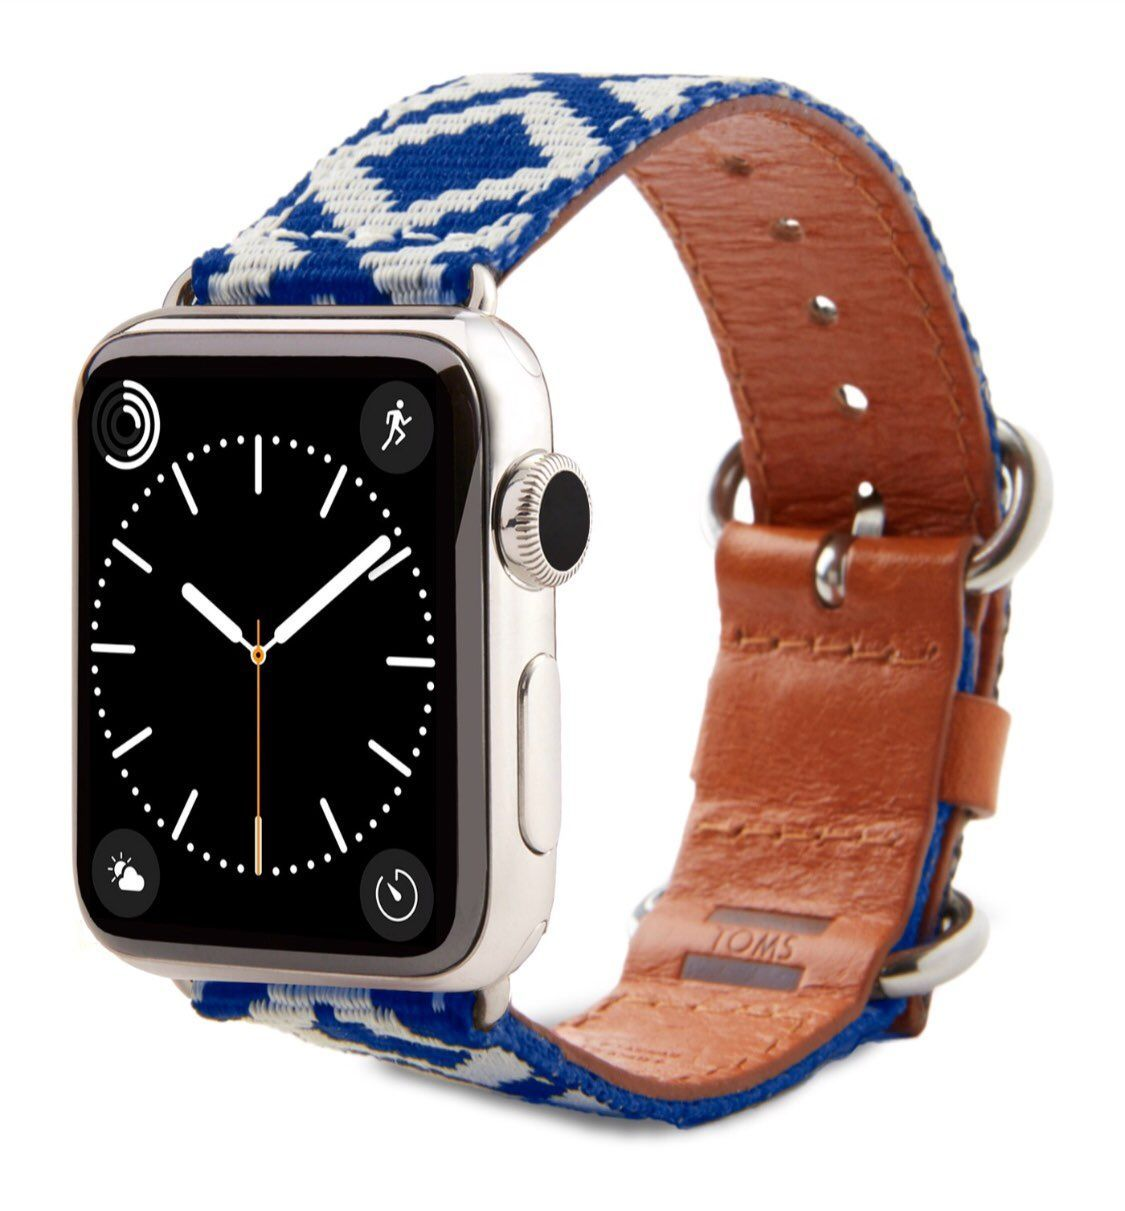 New! TOMS Woven Apple Watch Band 38 mm